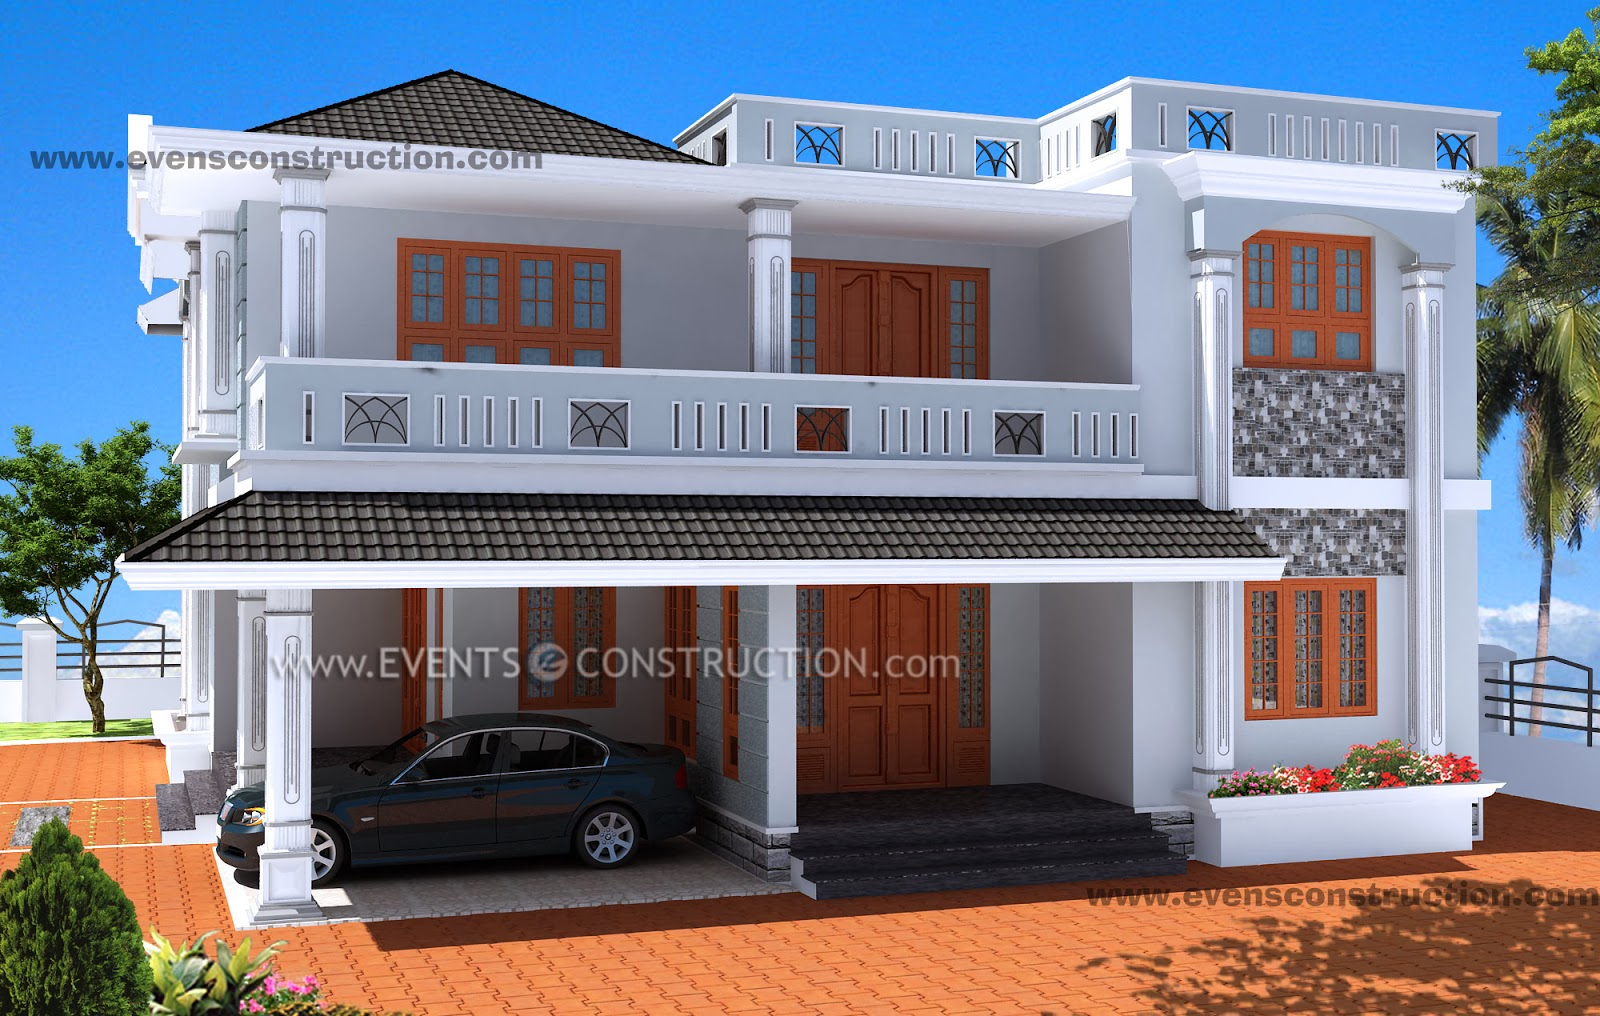 New House Design 2013 evens construction pvt ltd: 3d kerala house designs november 2013